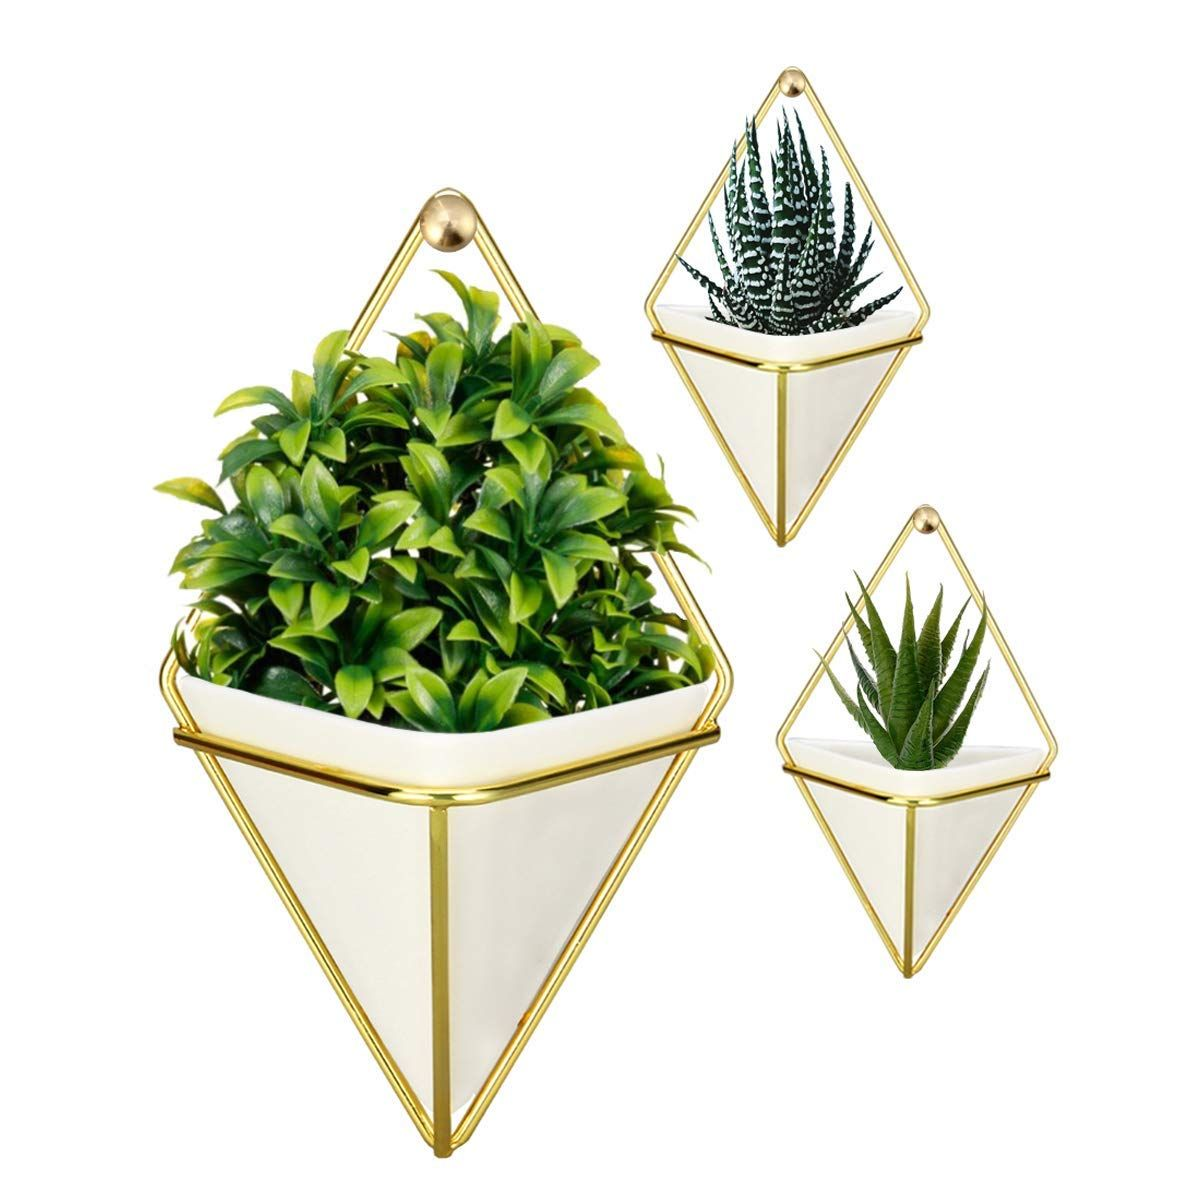 Geometric Plant Hanging Basket Succulents Vase Office Indoor Retro Flower Pot